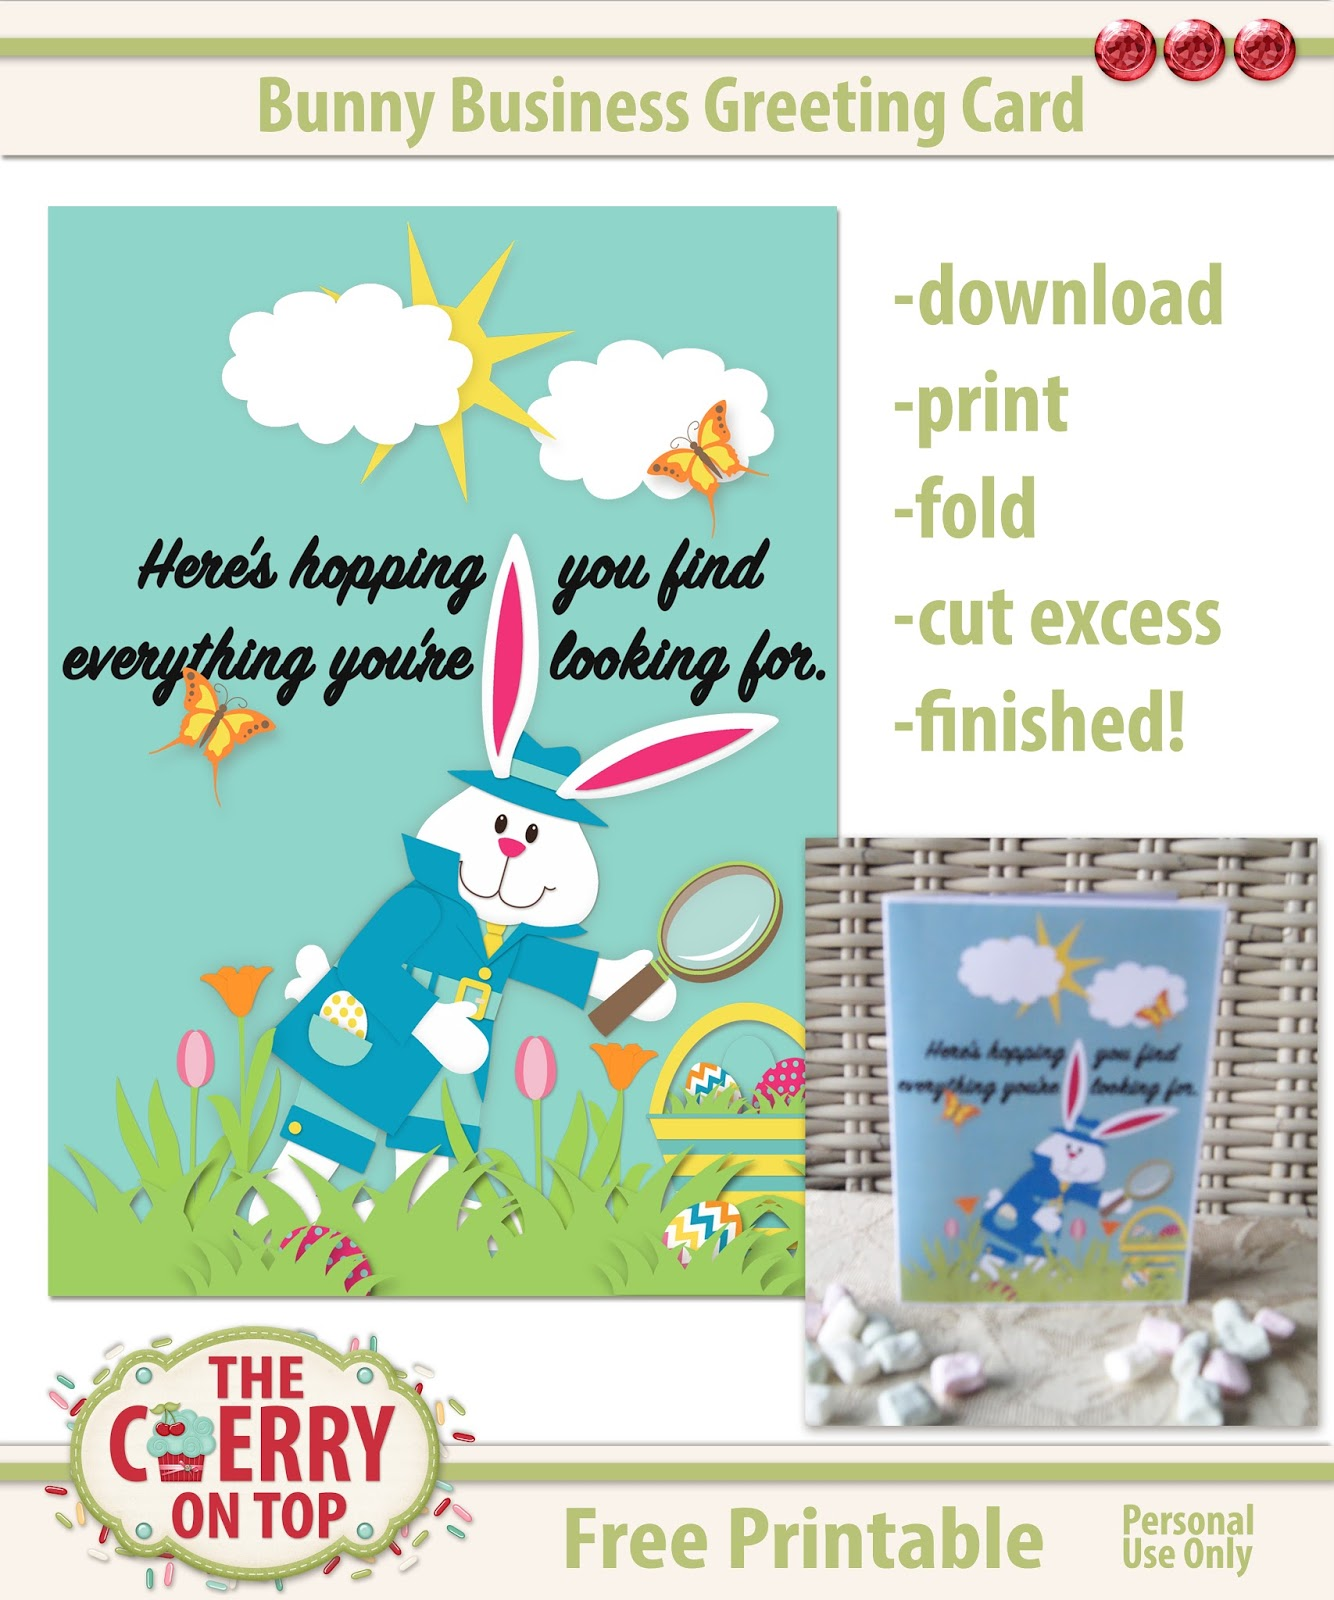 image relating to Printable Easter Card named The Cherry Upon Final: No cost Printable Easter Card In opposition to The